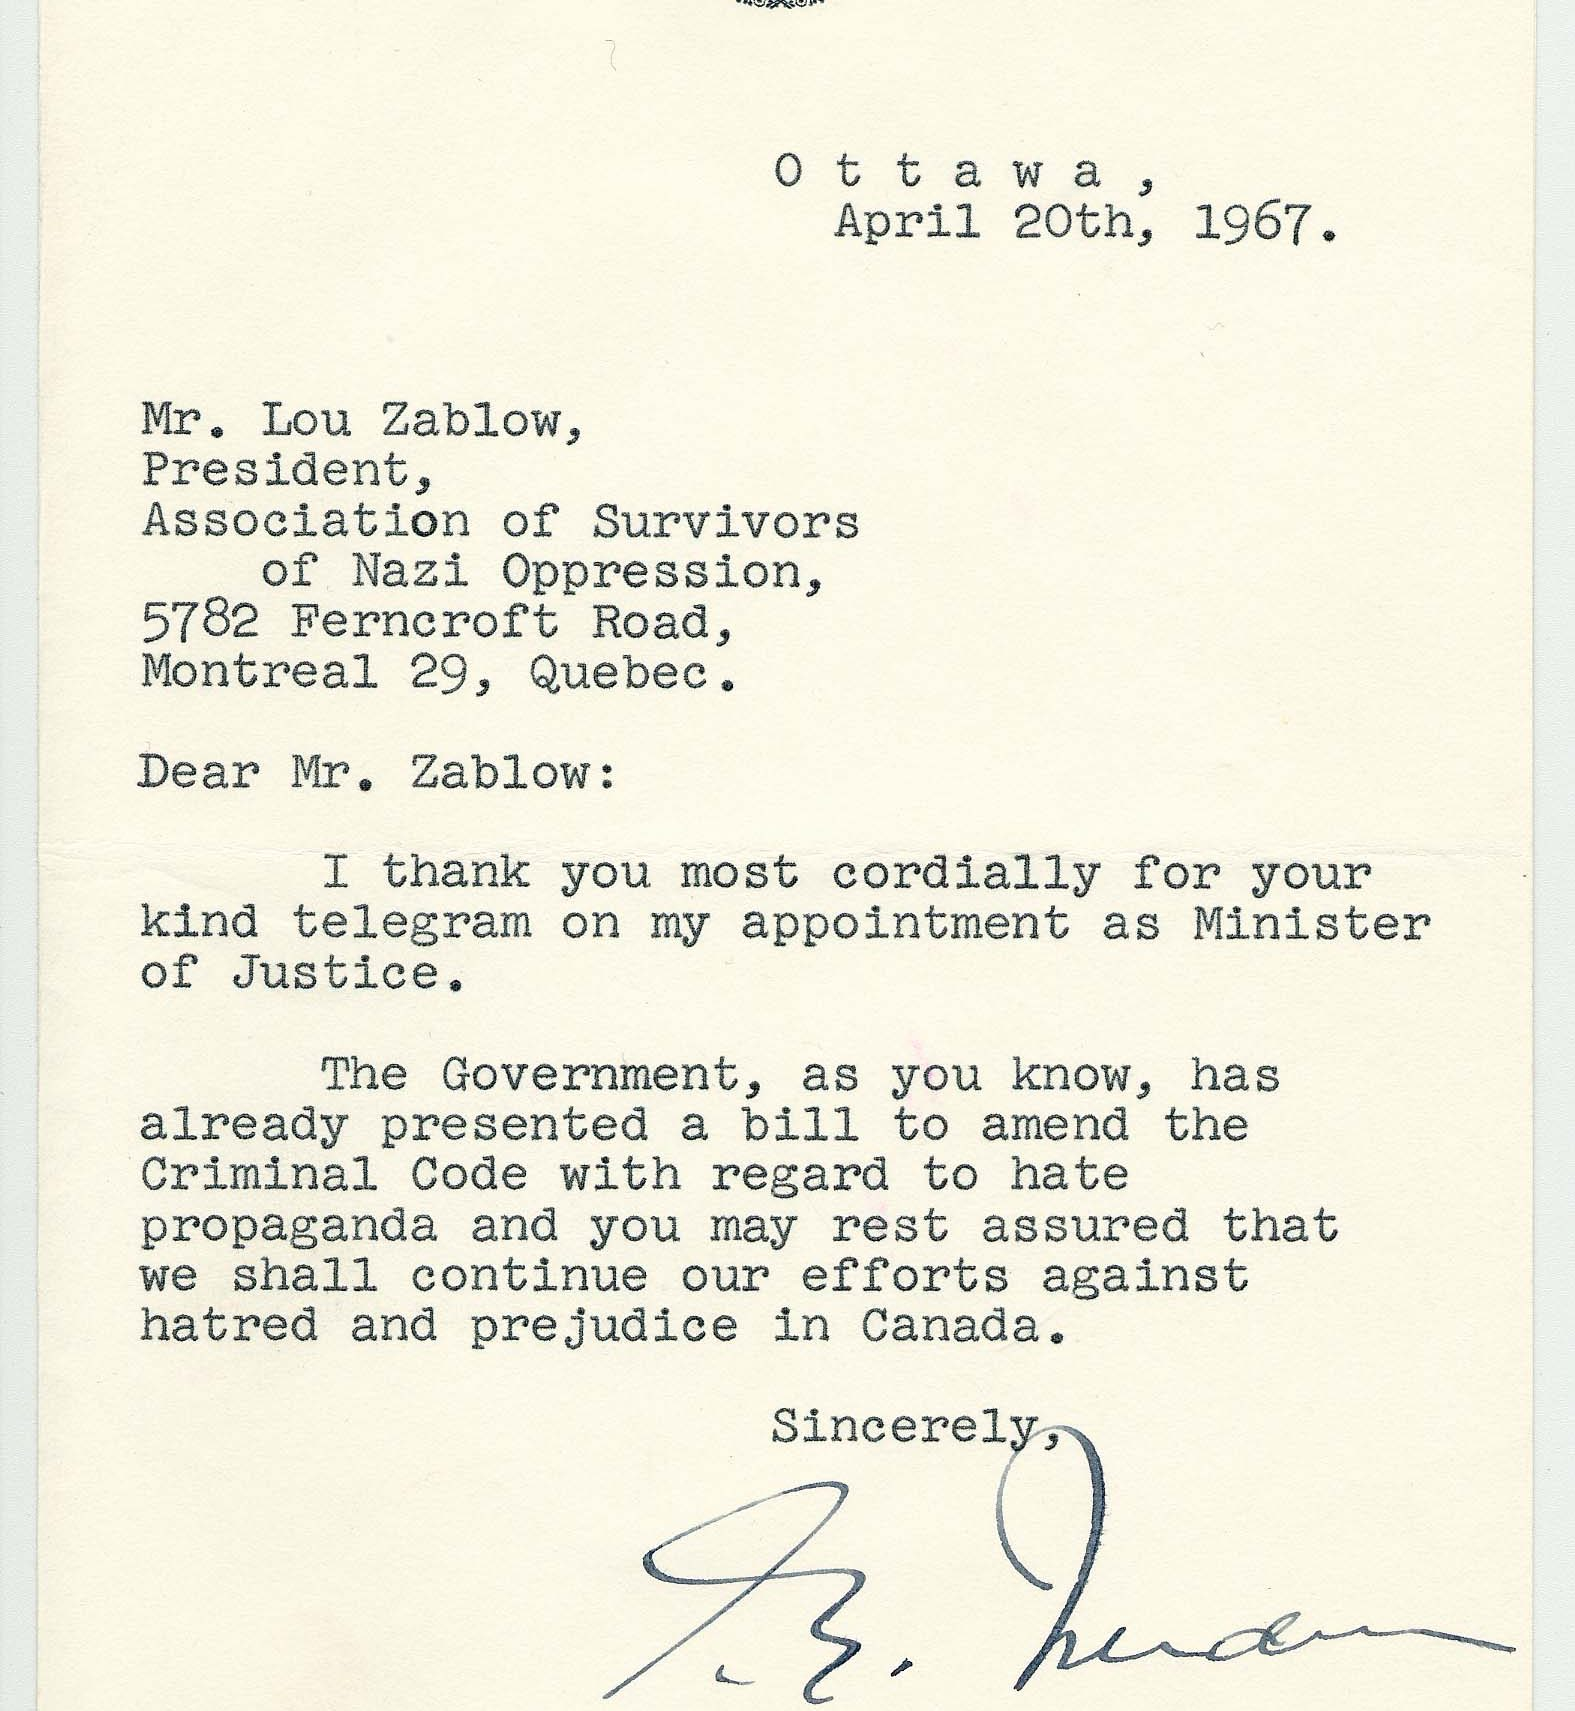 This letter is an official response to Lou Zablow, President of the Association of Survivors of Nazi Oppression. It is signed by Pierre Elliot Trudeau, then Minister of Justice and Attorney General of Canada, on April 20, 1967. It mentions the Canadian hate propaganda law.